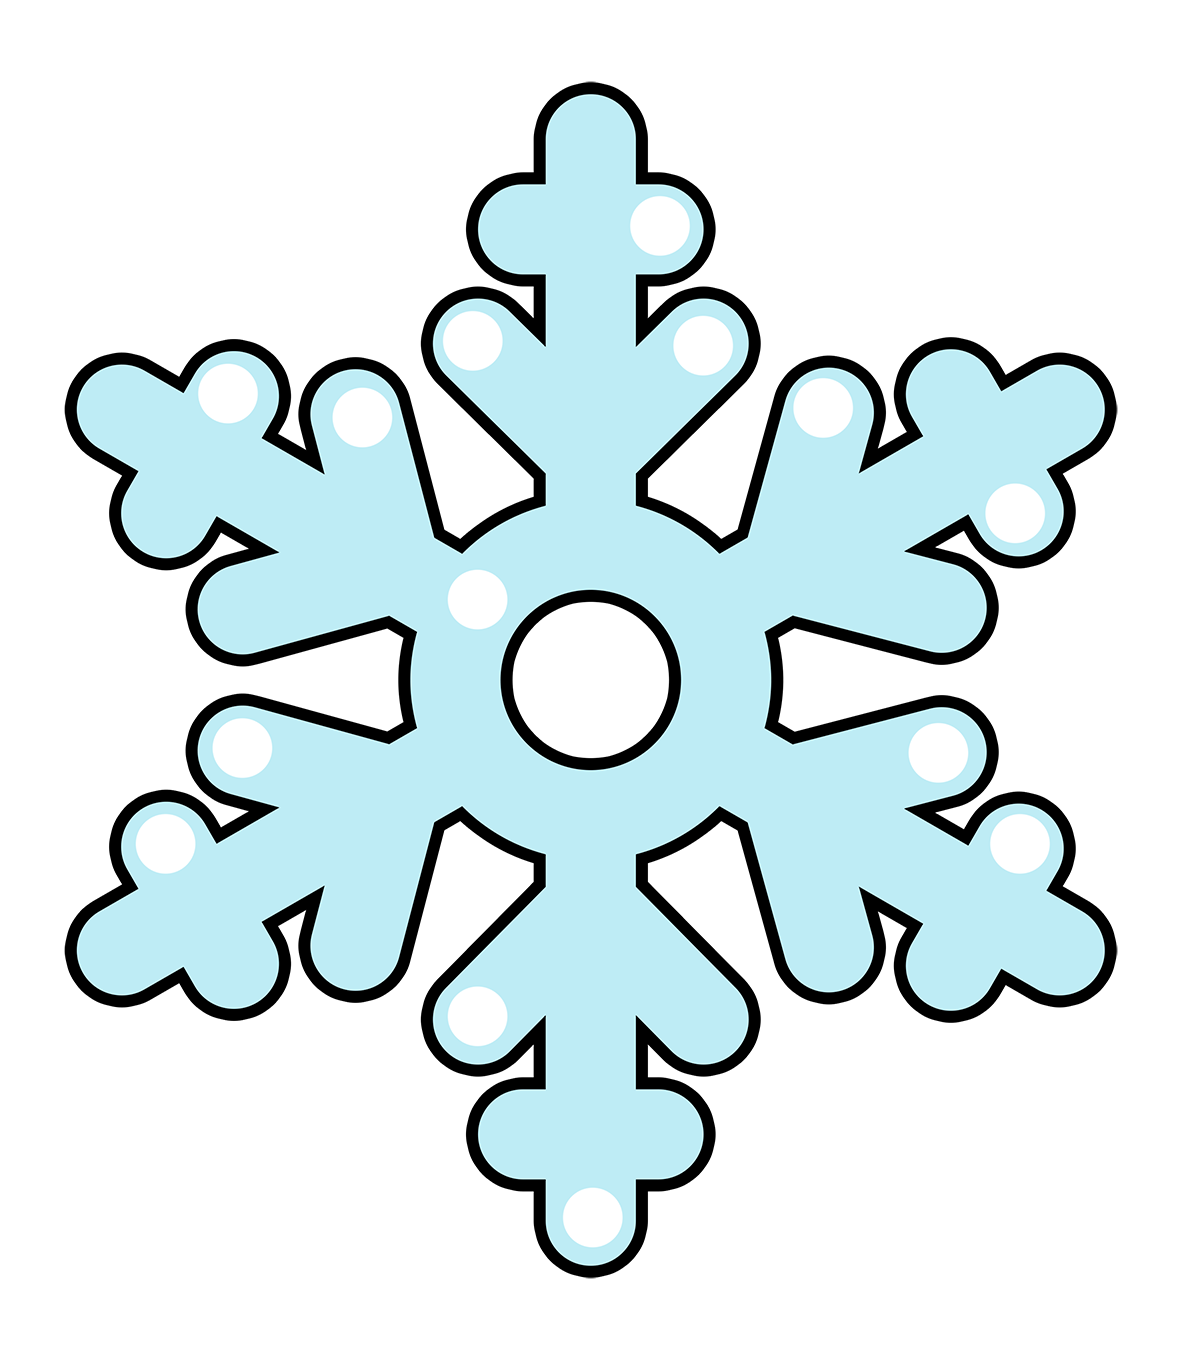 Cartoon snowflake clipart picture free stock Cartoon Snowflake Pictures | Free download best Cartoon Snowflake ... picture free stock